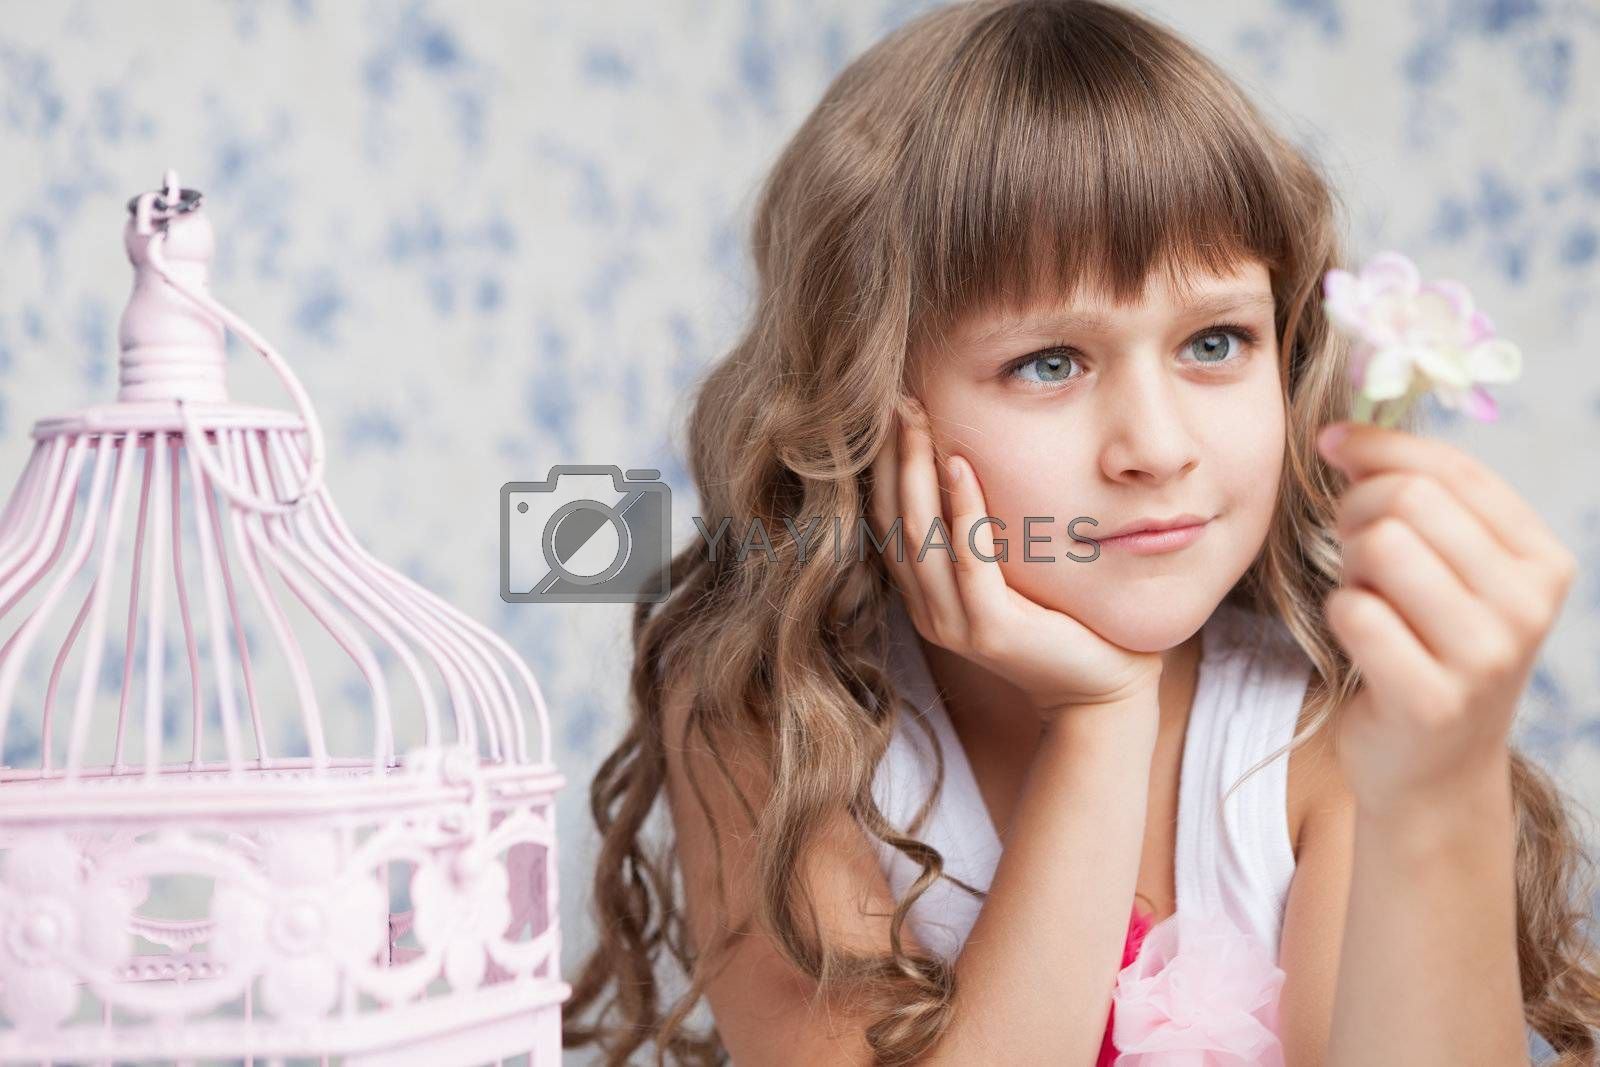 Portrait of tender sincere dreamy romantic openhearted blond girl with long wavy hair looking at pink flower in hand near birdcage on the light blue flower background